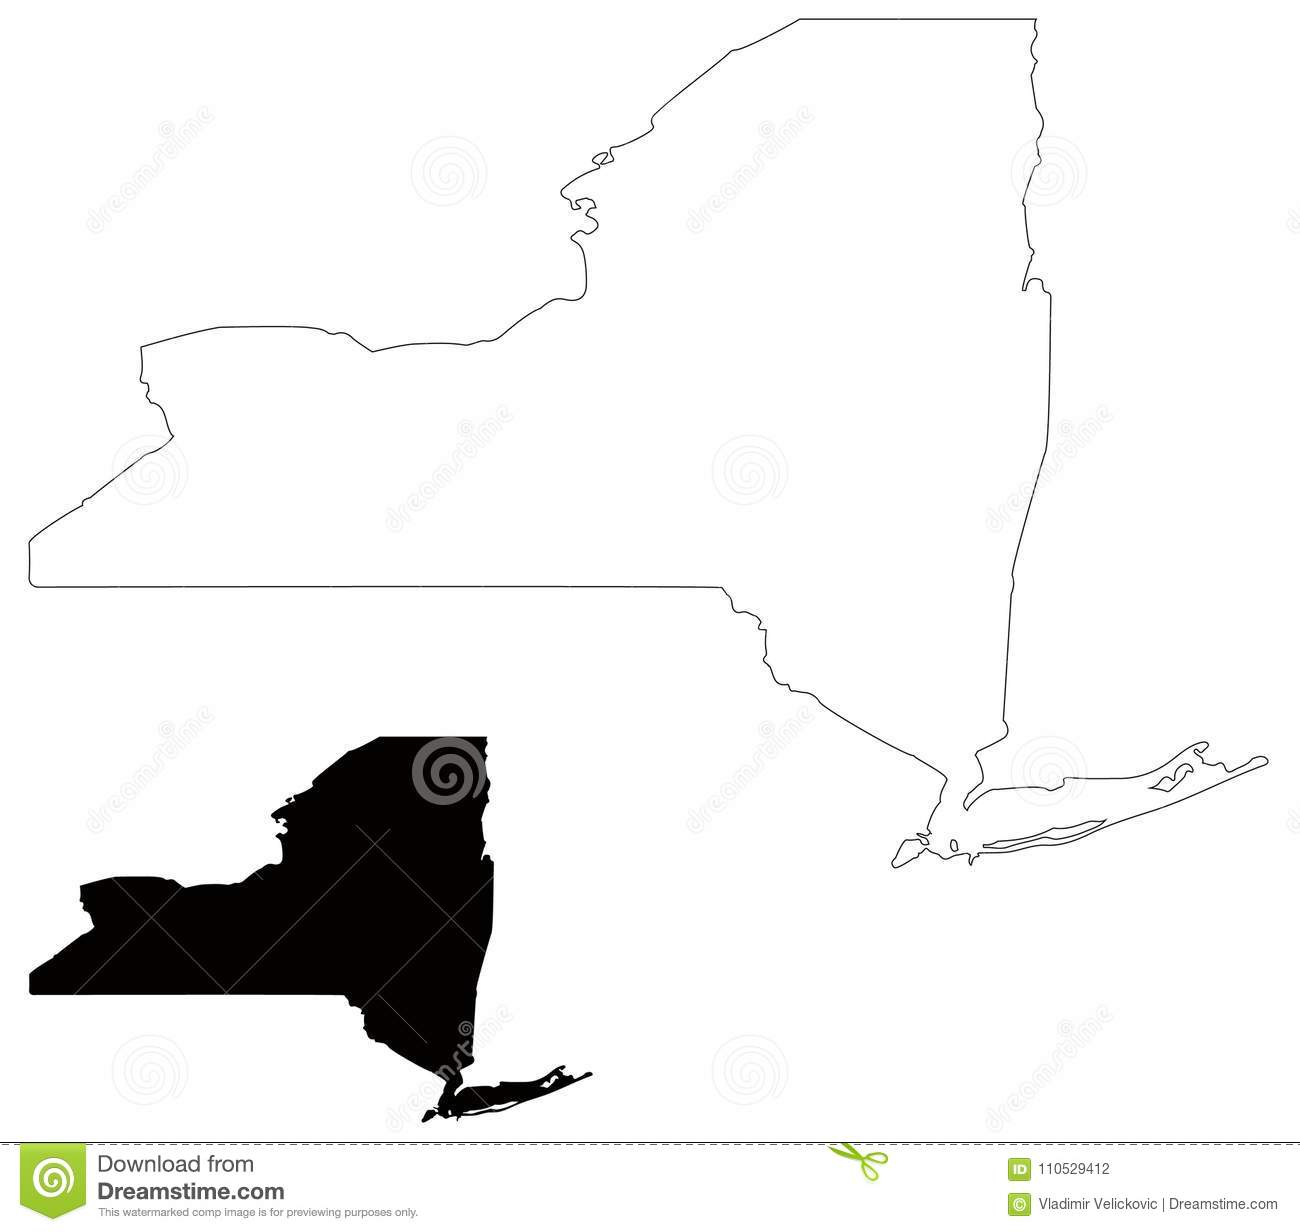 New York State Map - State In The Northeastern United States ...